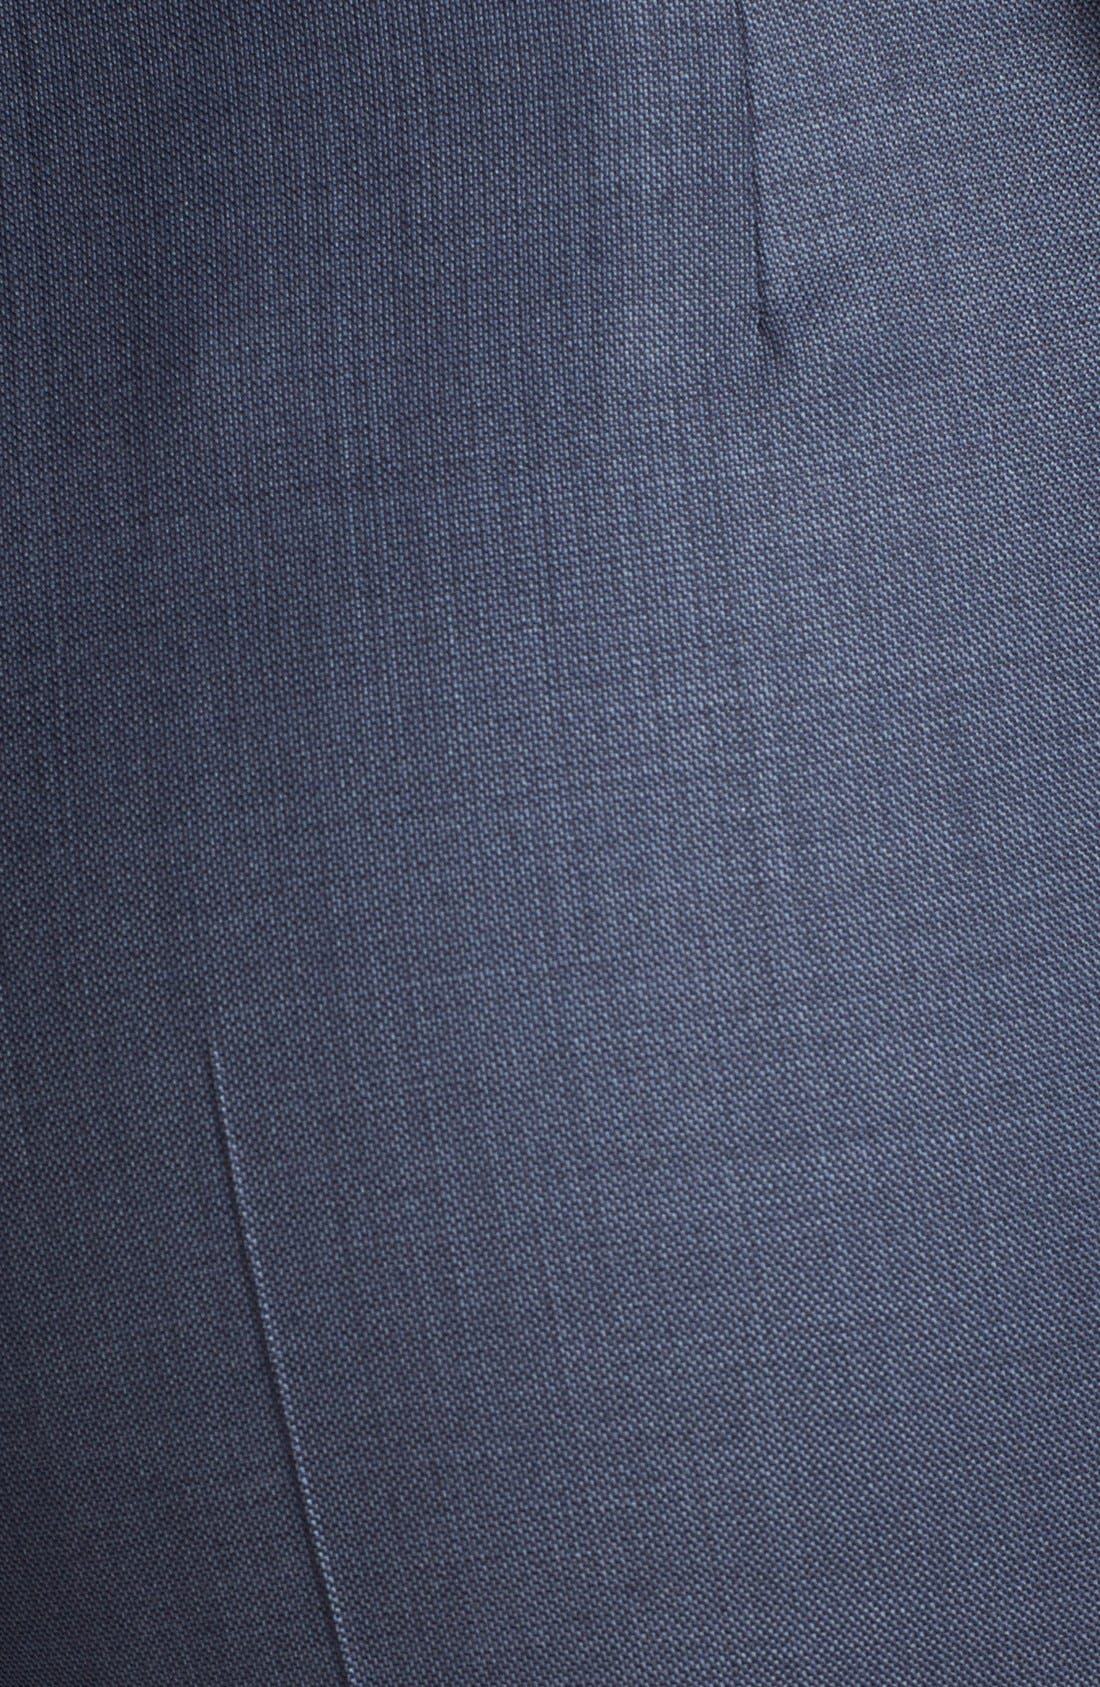 'Temuna' Wool Blend Suiting Trousers,                             Alternate thumbnail 3, color,                             Electric Blue Fantasy Melange